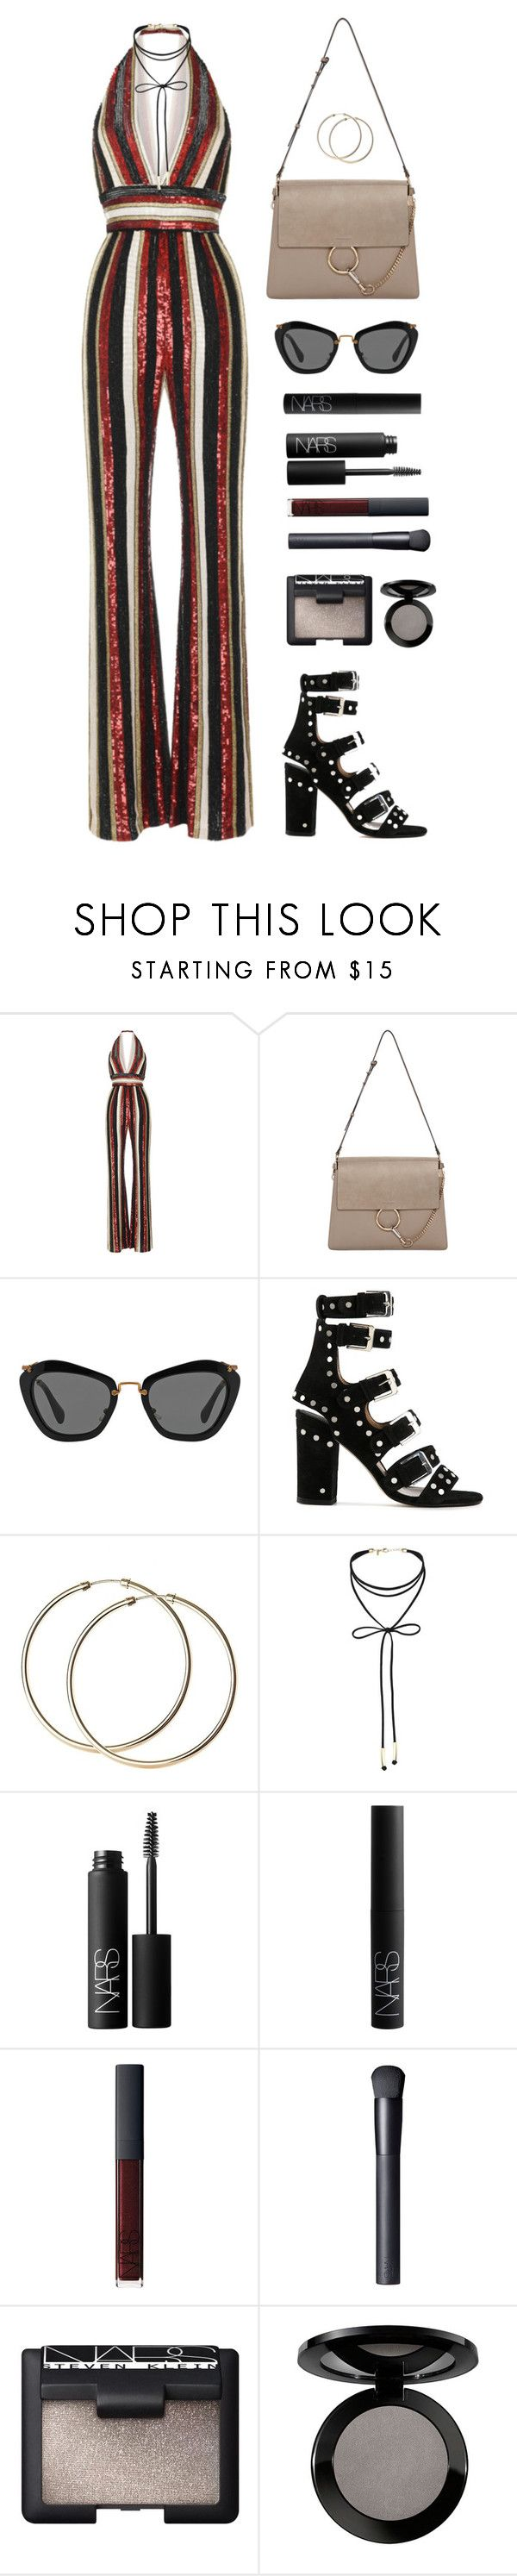 """""""Sequin Jumpsuit"""" by baludna ❤ liked on Polyvore featuring Zuhair Murad, Chloé, Miu Miu, Laurence Dacade, Miss Selfridge, NARS Cosmetics and Vincent Longo"""